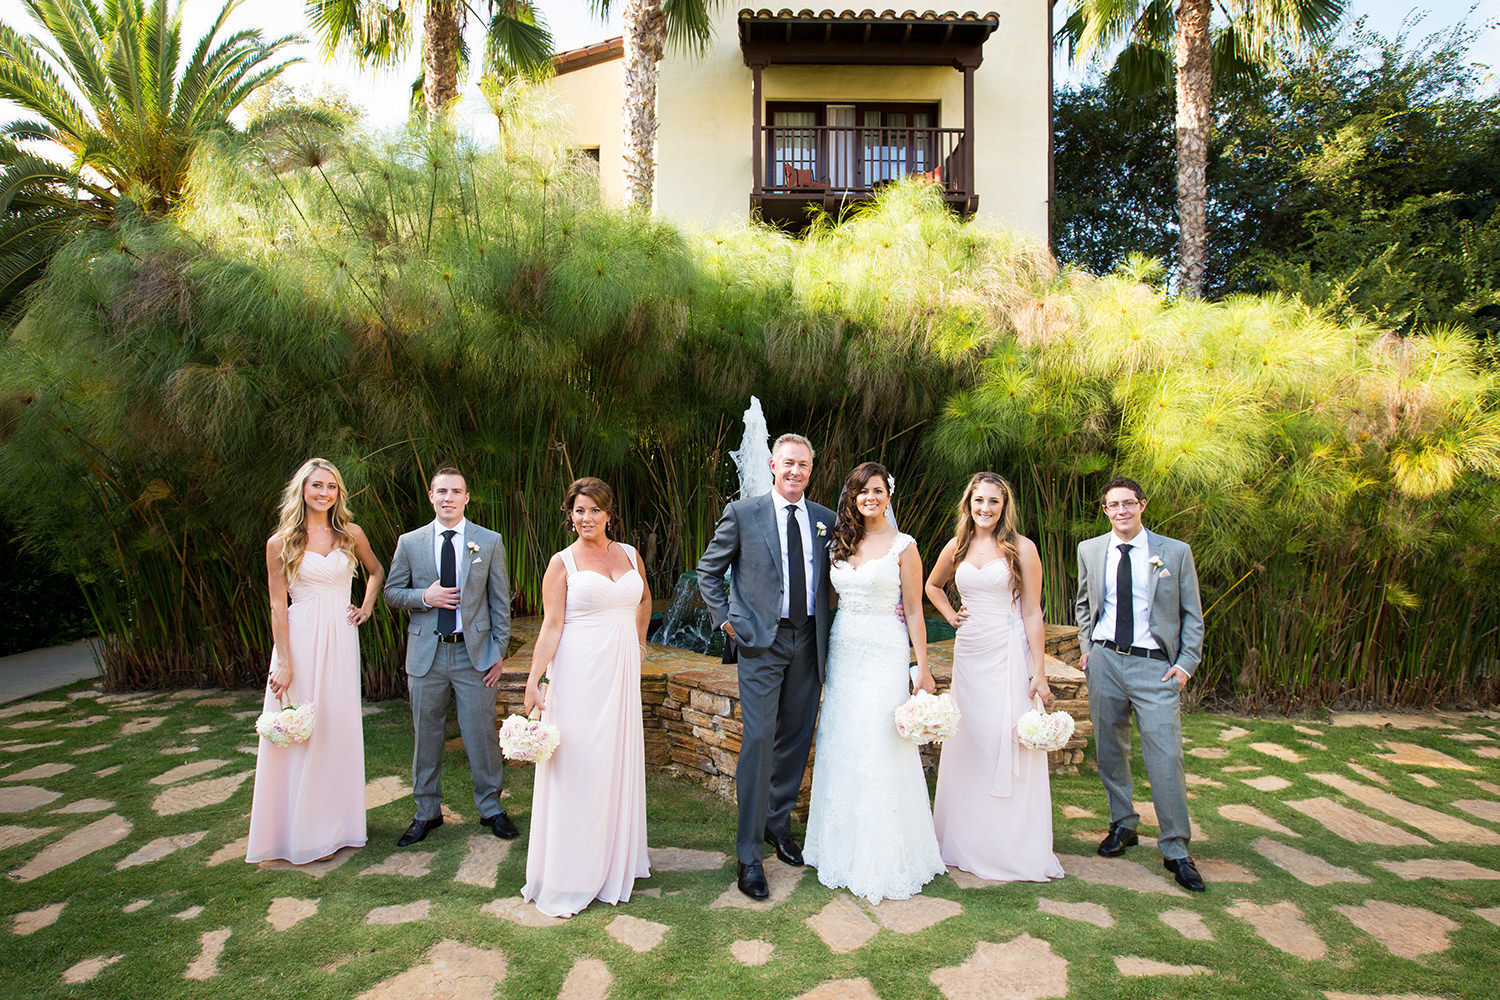 Atypical wedding party portrait